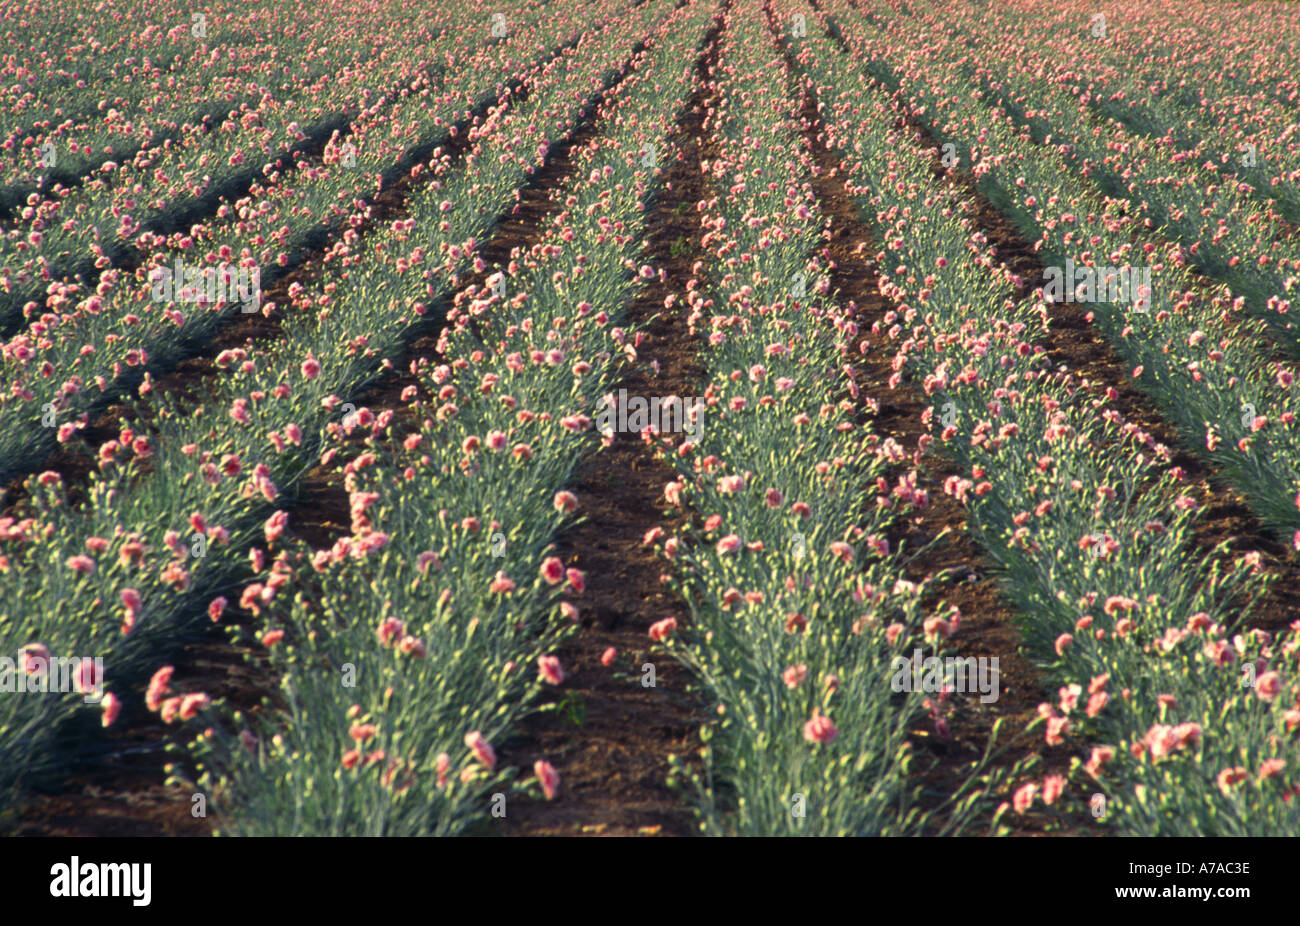 Field of pinks carnations mass production for flower market - Stock Image